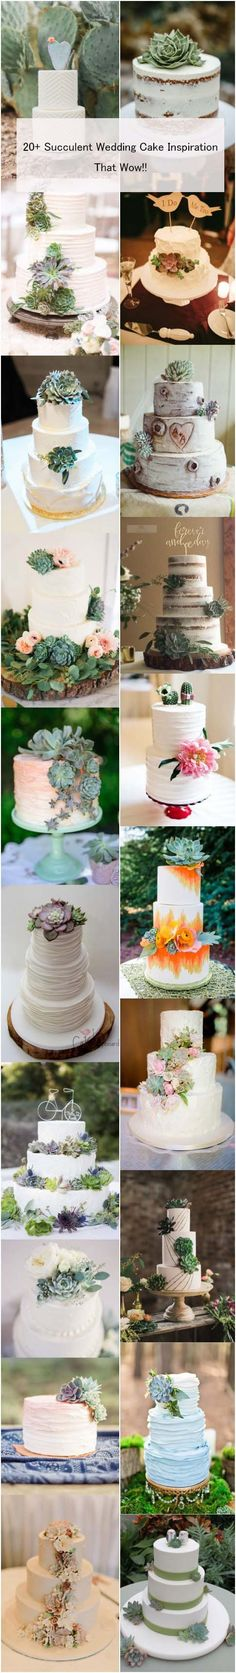 20+ Succulent Wedding Cake Inspiration That Wow!! | http://www.weddinginclude.com/2016/07/succulent-wedding-cake-inspirations/